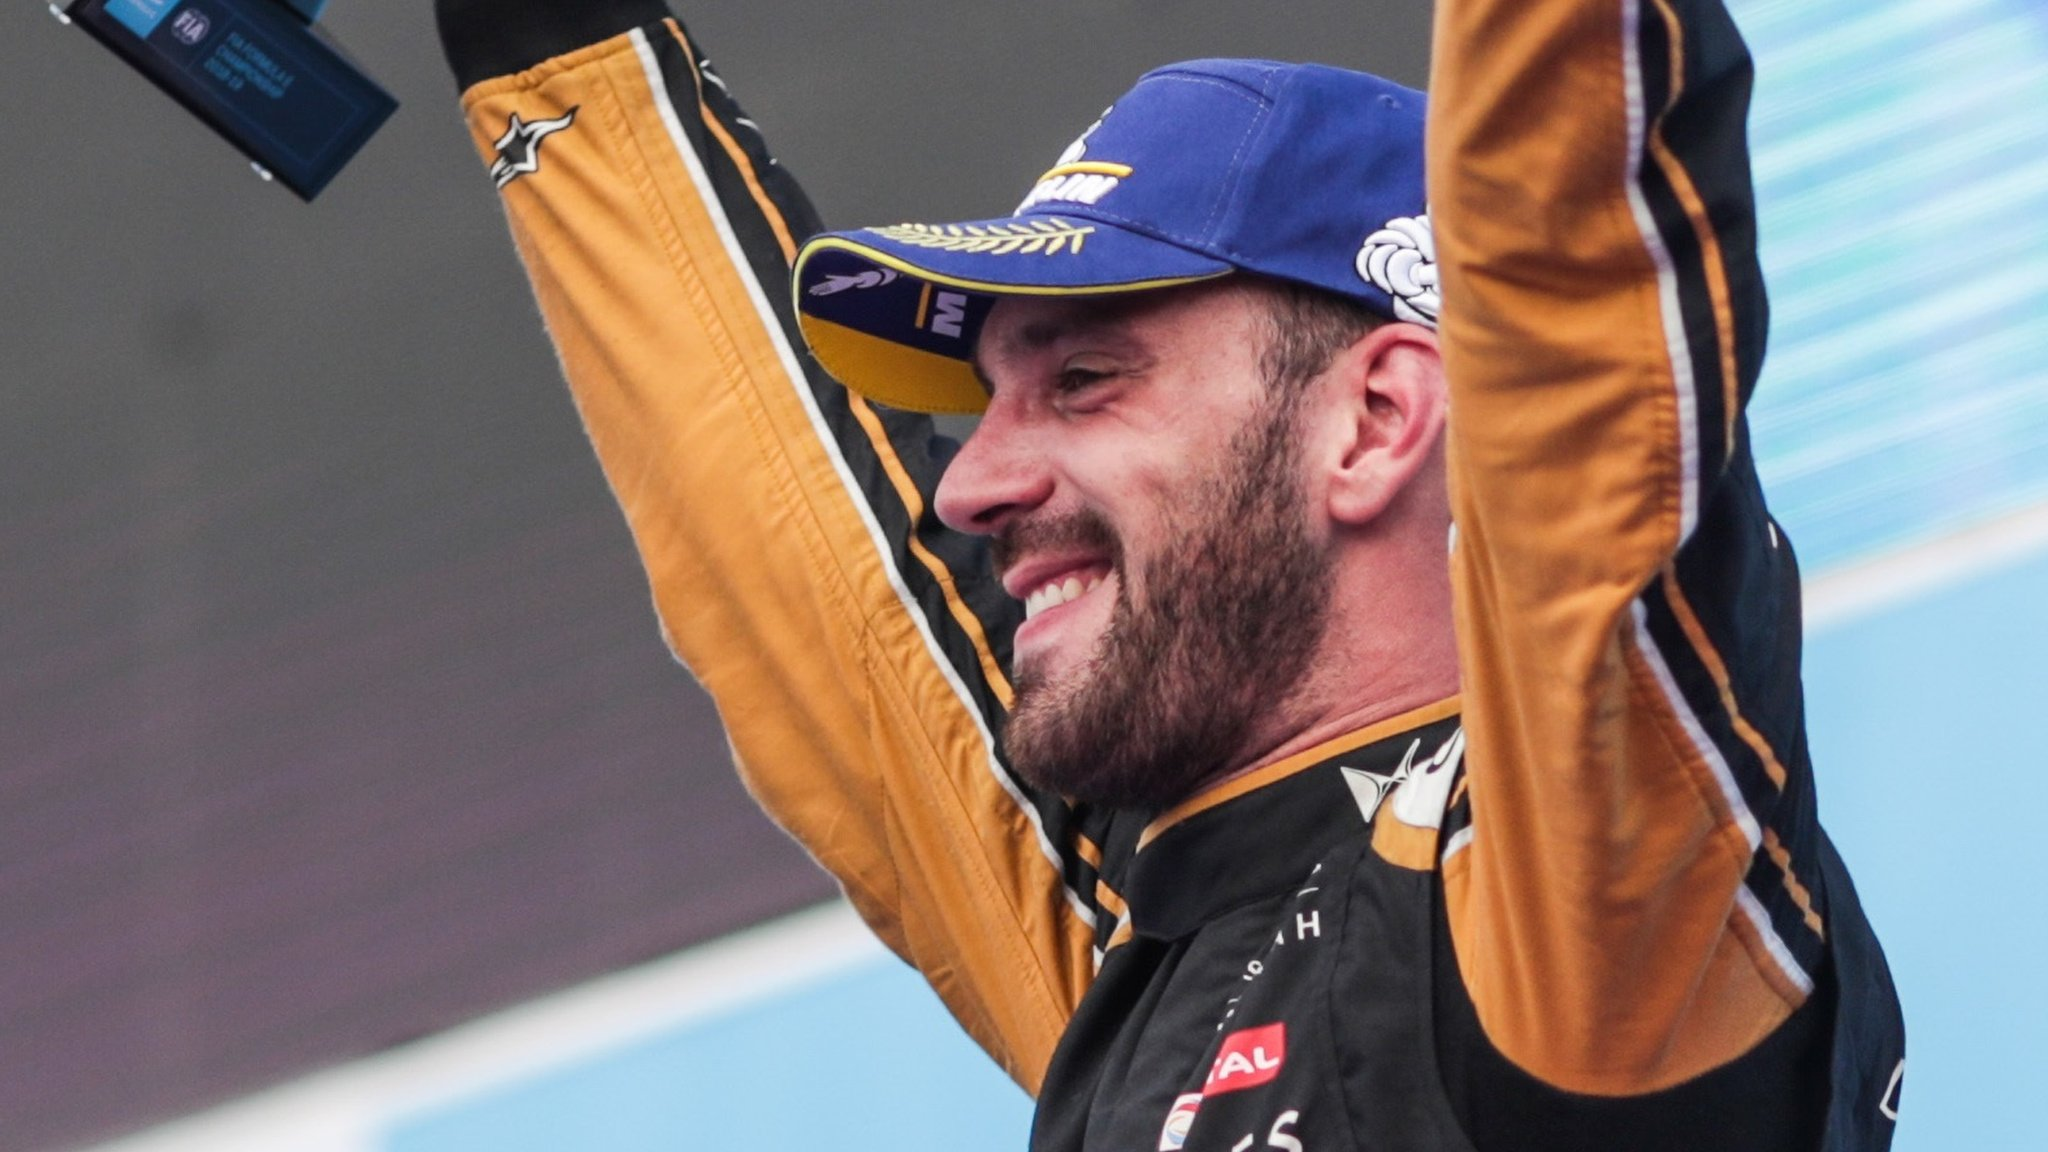 Formula E: Jean-Eric Vergne wins Sanya E-Prix as Antonio Felix da Costa goes top